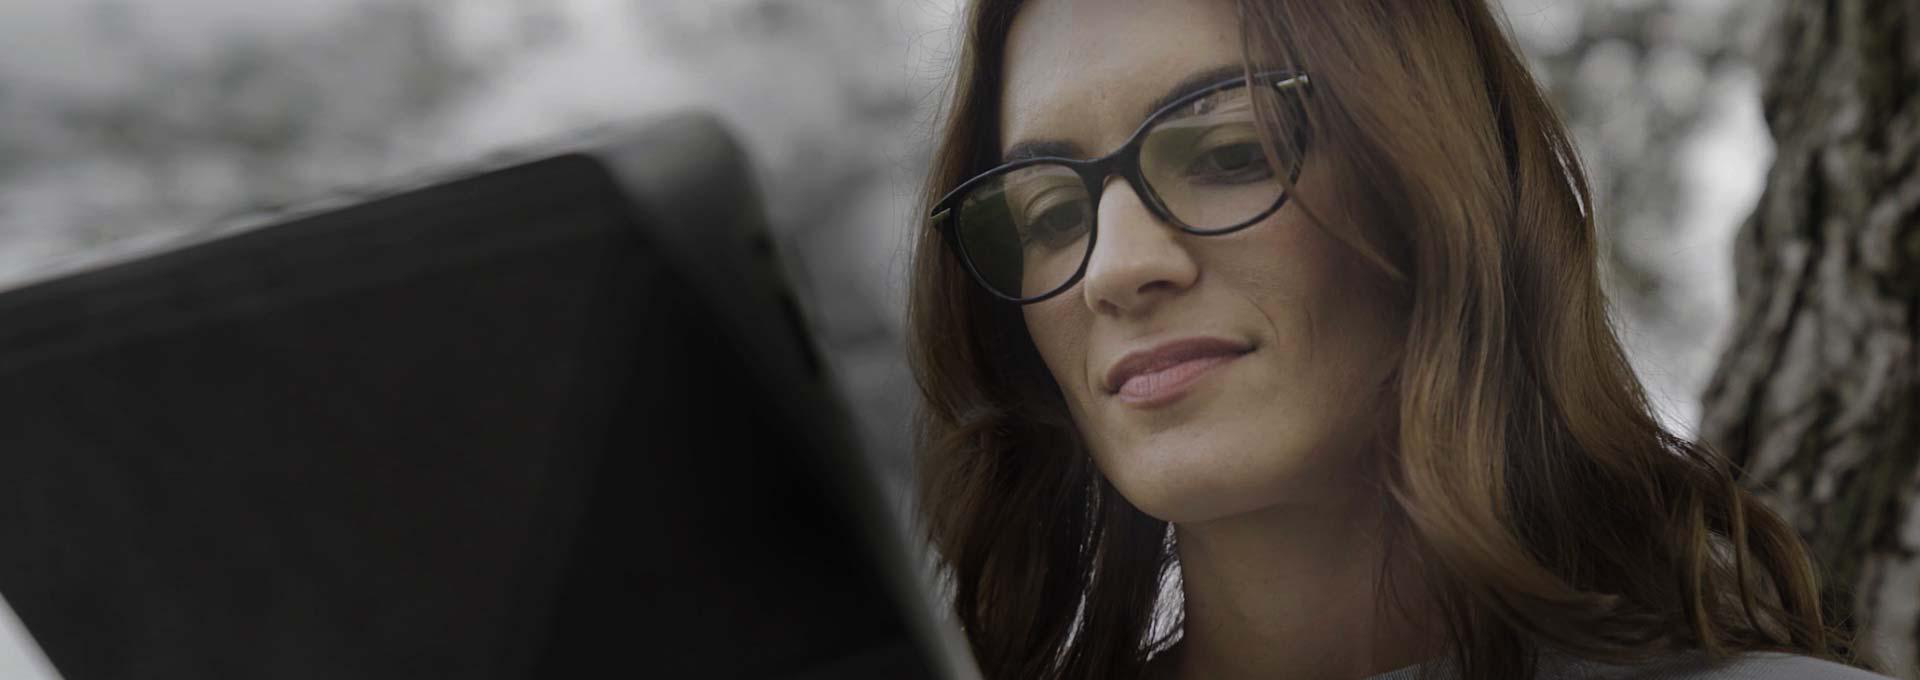 woman wearing glasses viewing a tablet